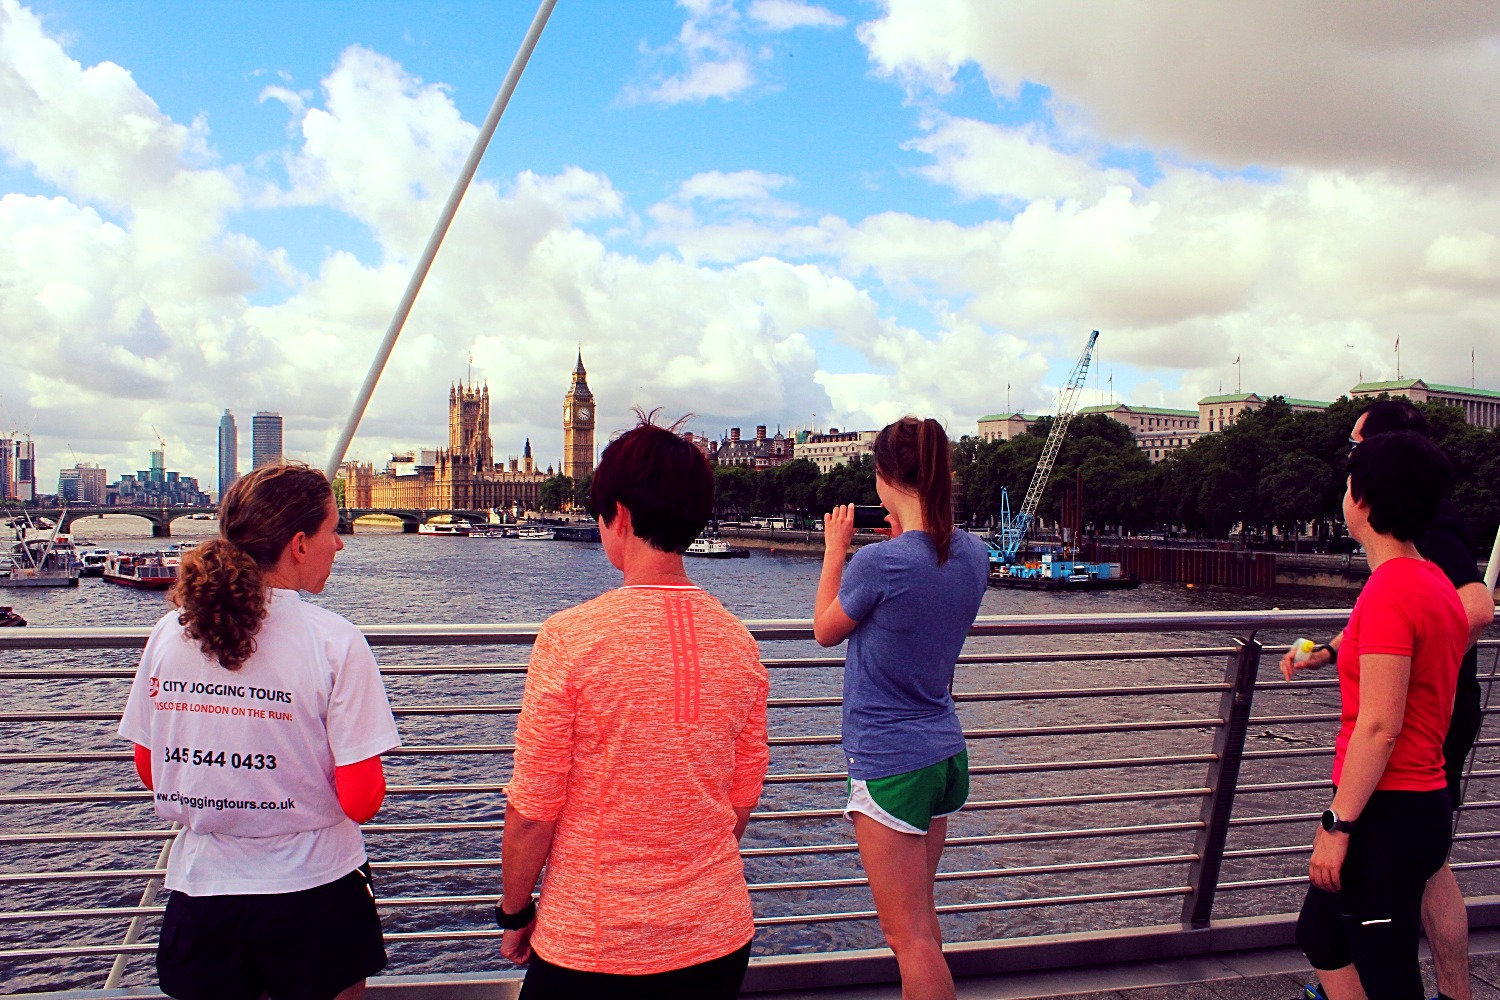 Iconic London 5kms